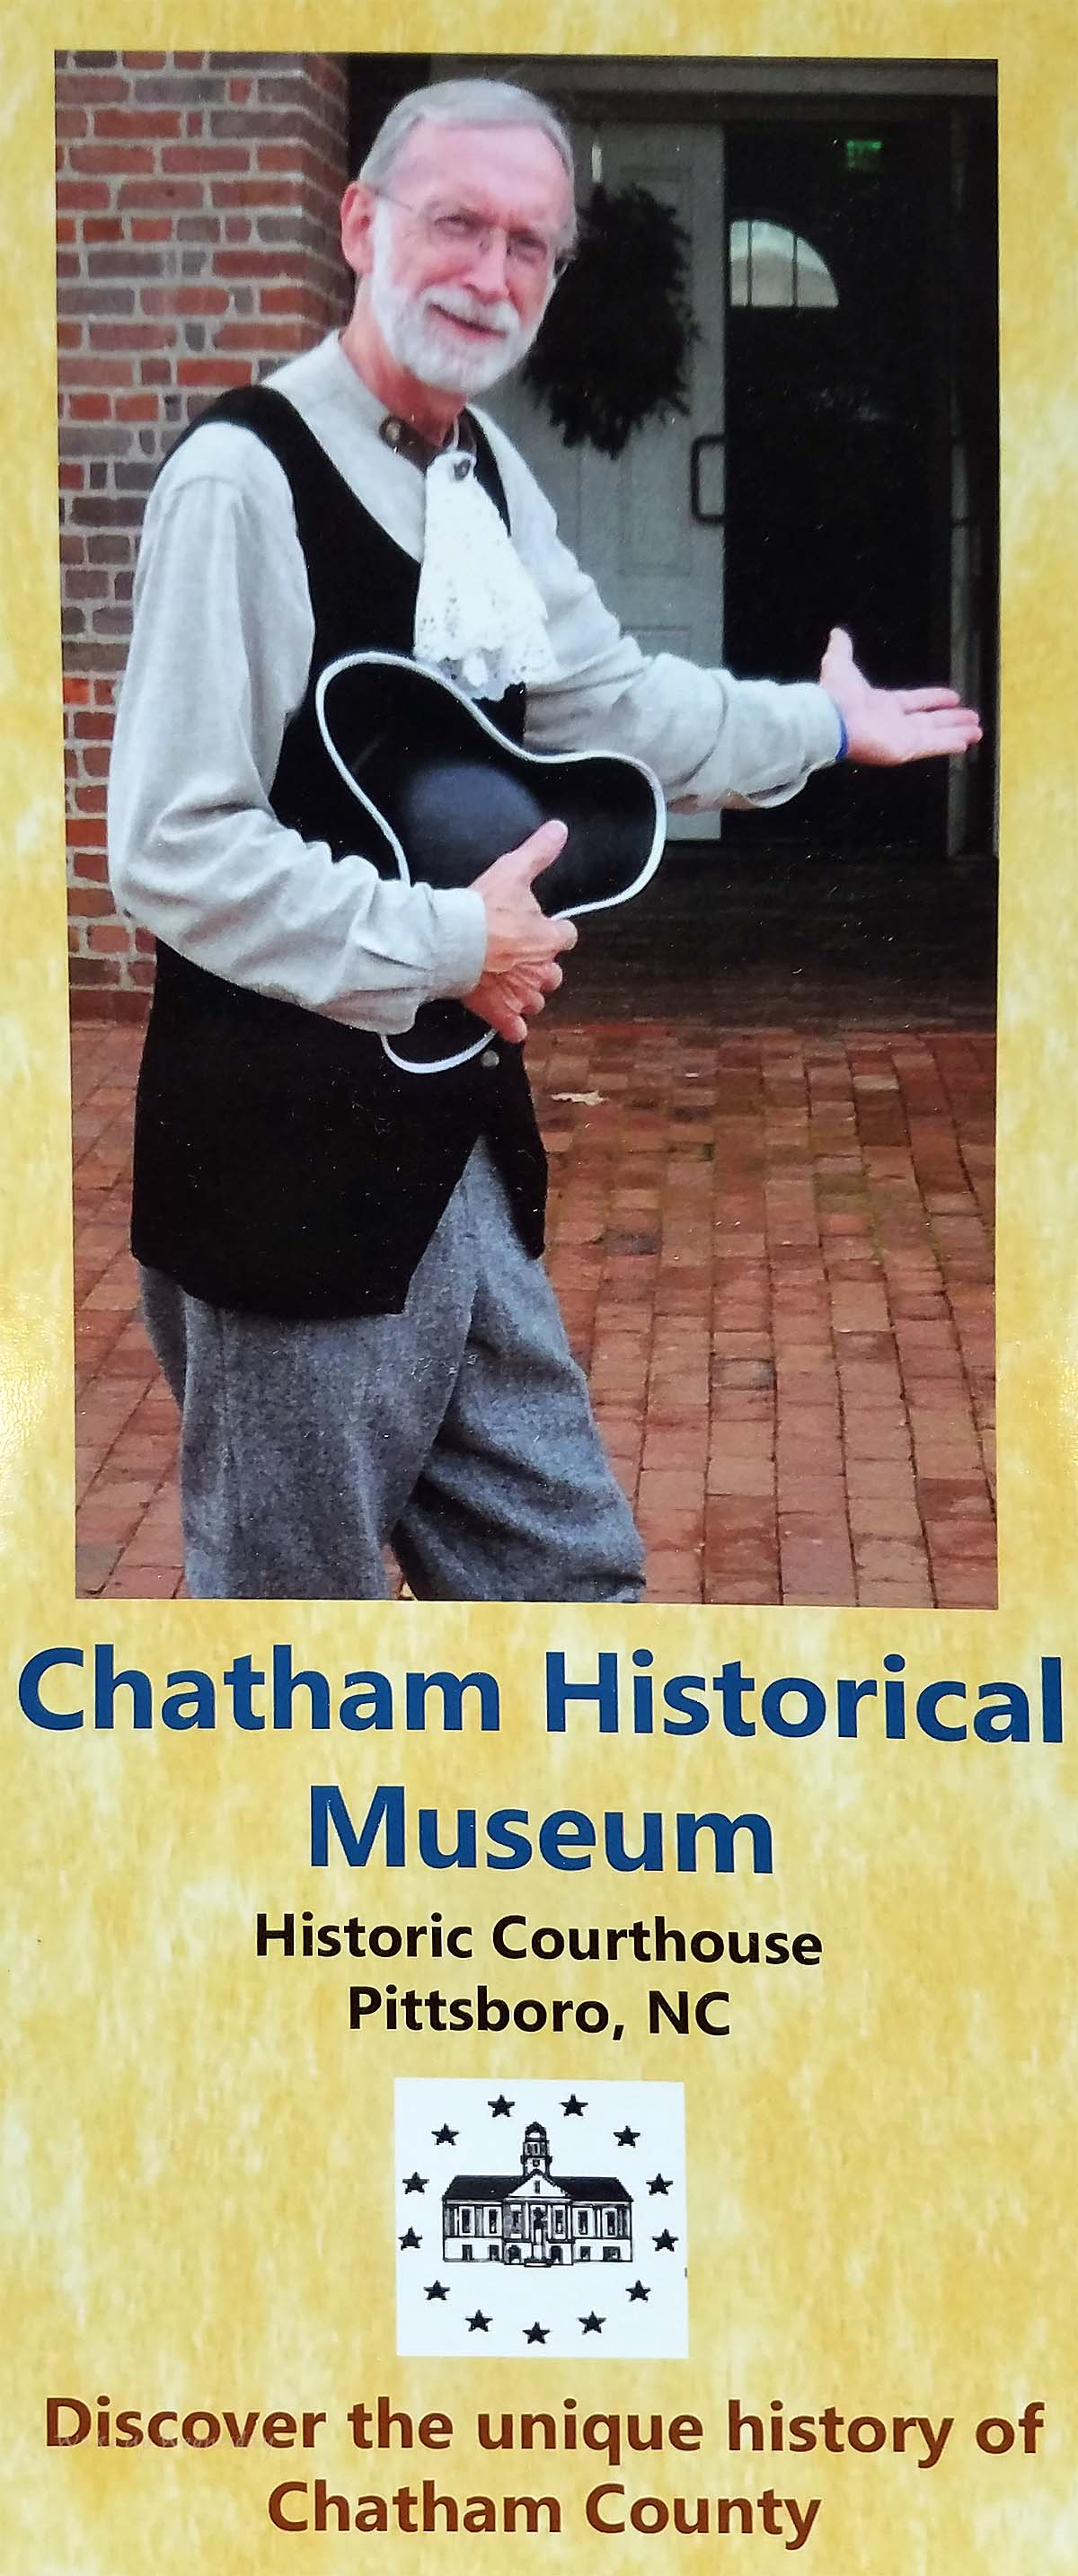 Chatham Historical Museum brochure